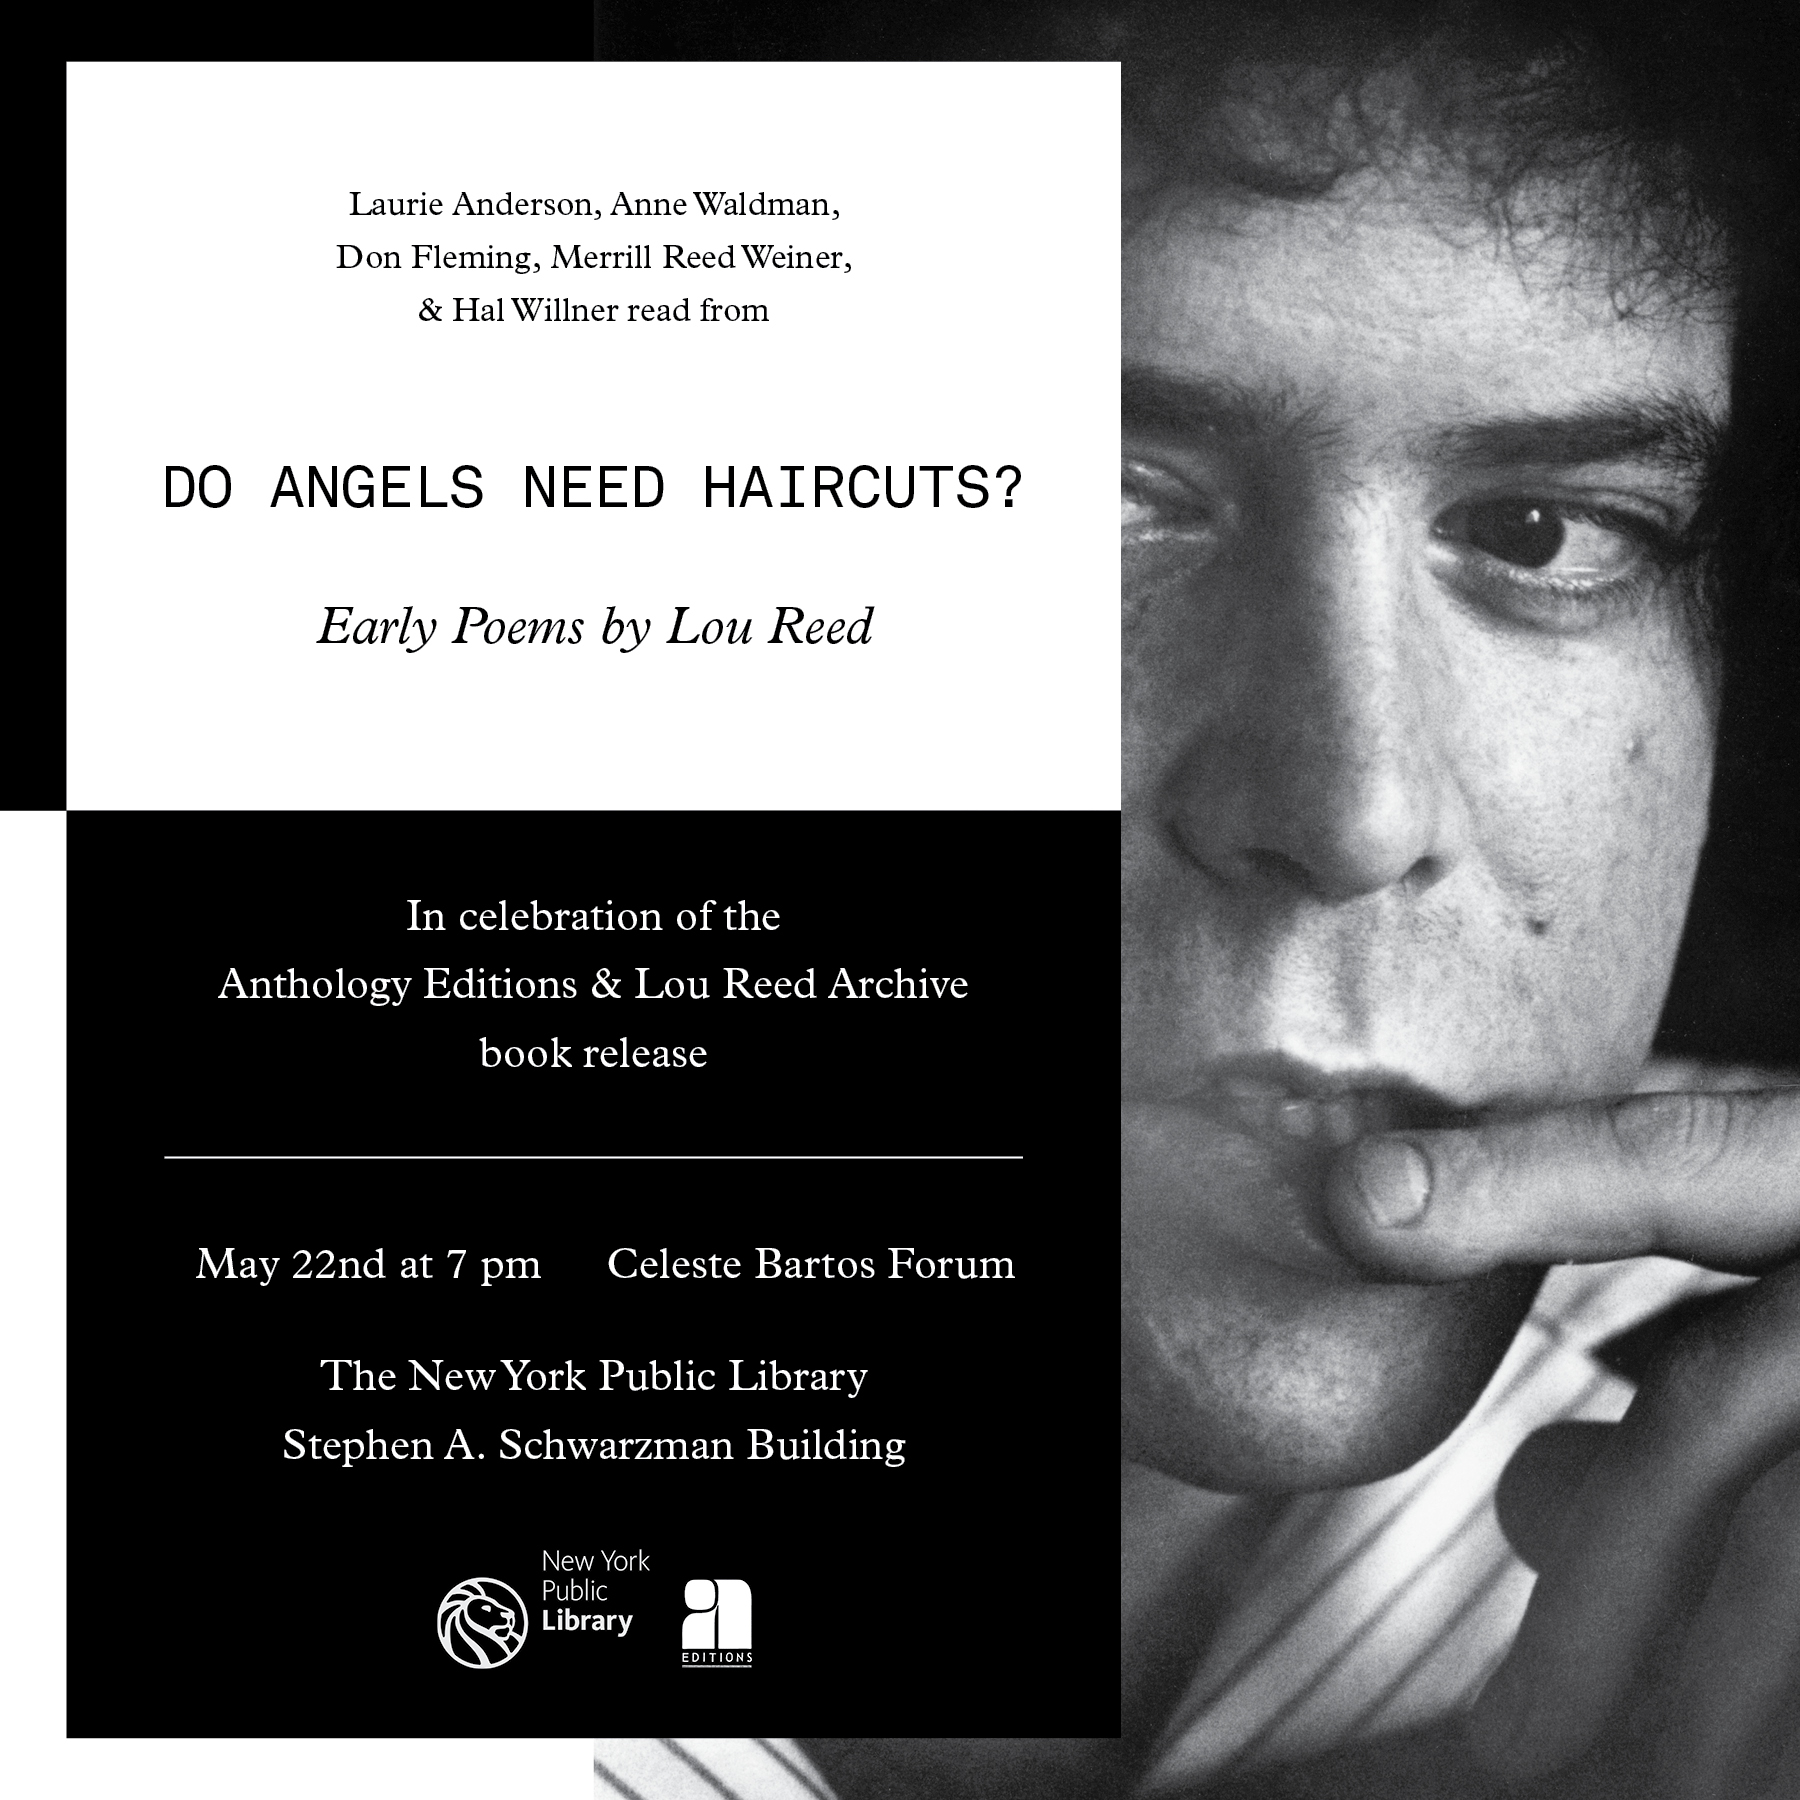 Lou Reed - Do Angels Need Haircuts? Release event flyer